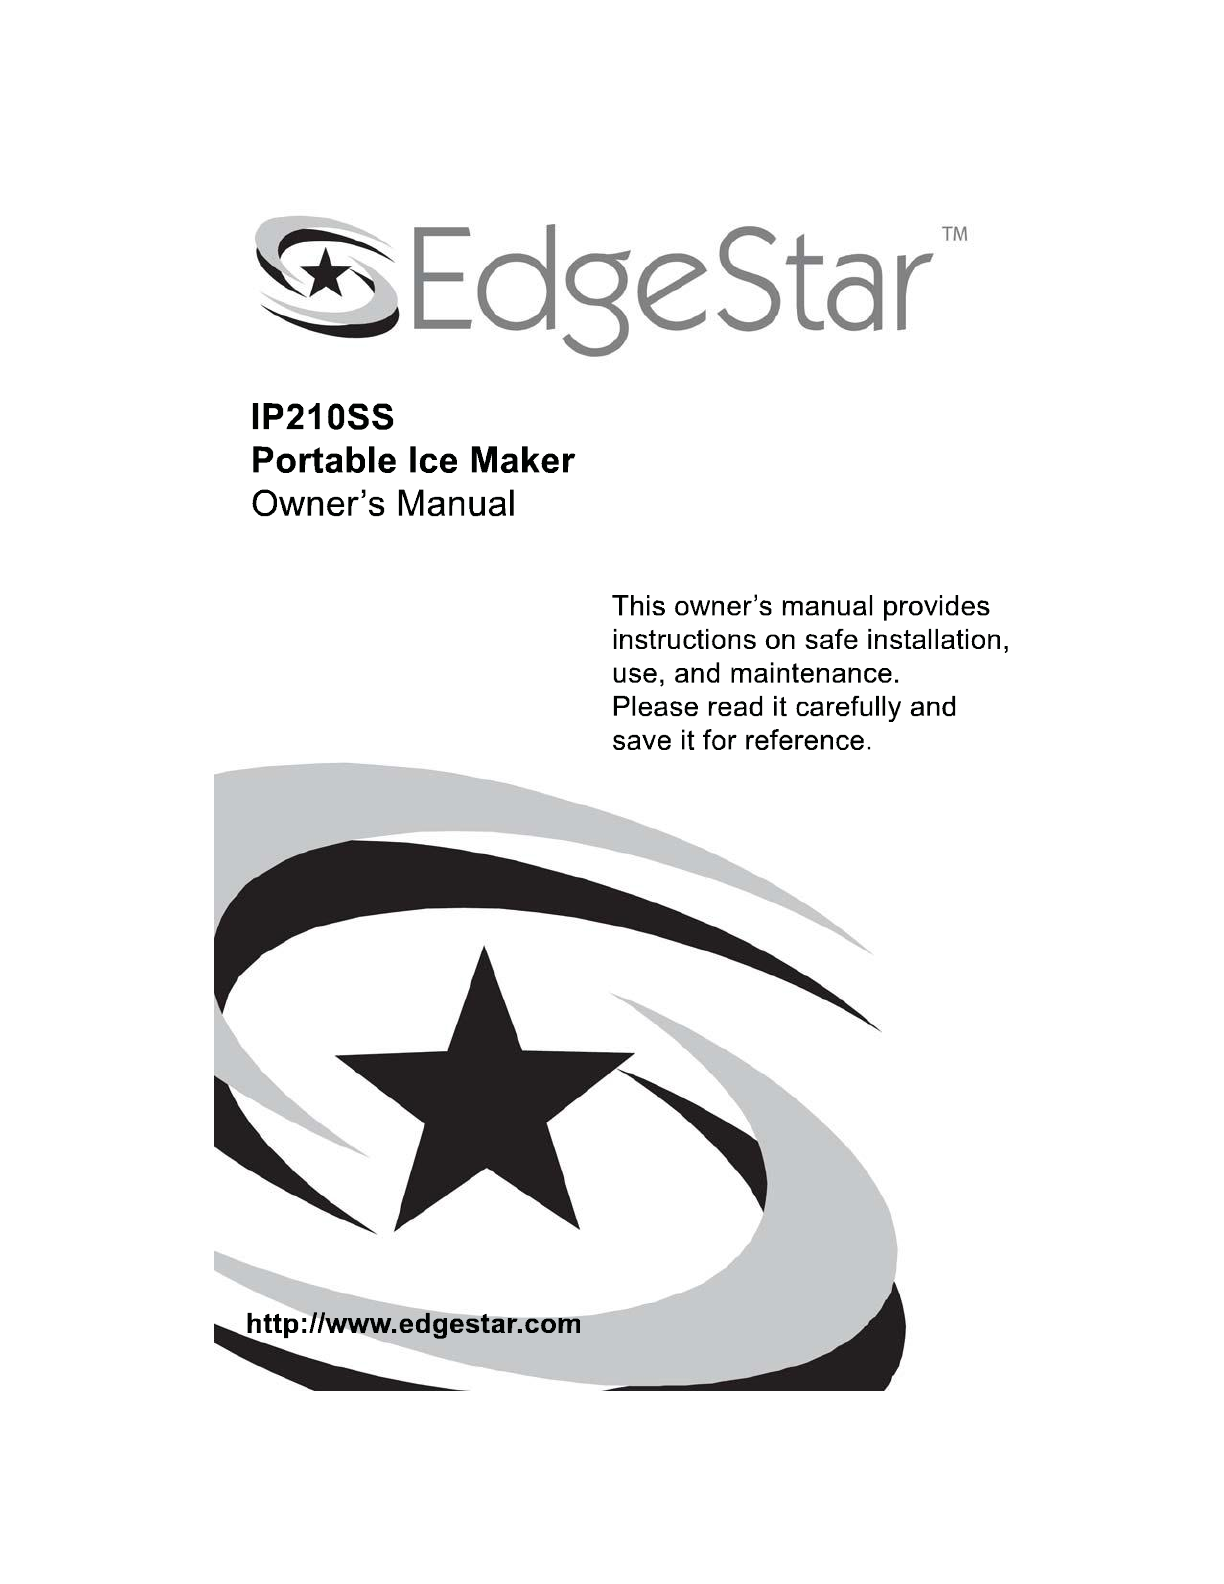 edgestar ice maker ip210ss user guide manualsonline com rh kitchen manualsonline com edgestar ib120ss owners manual edgestar washer dryer combo owners manual